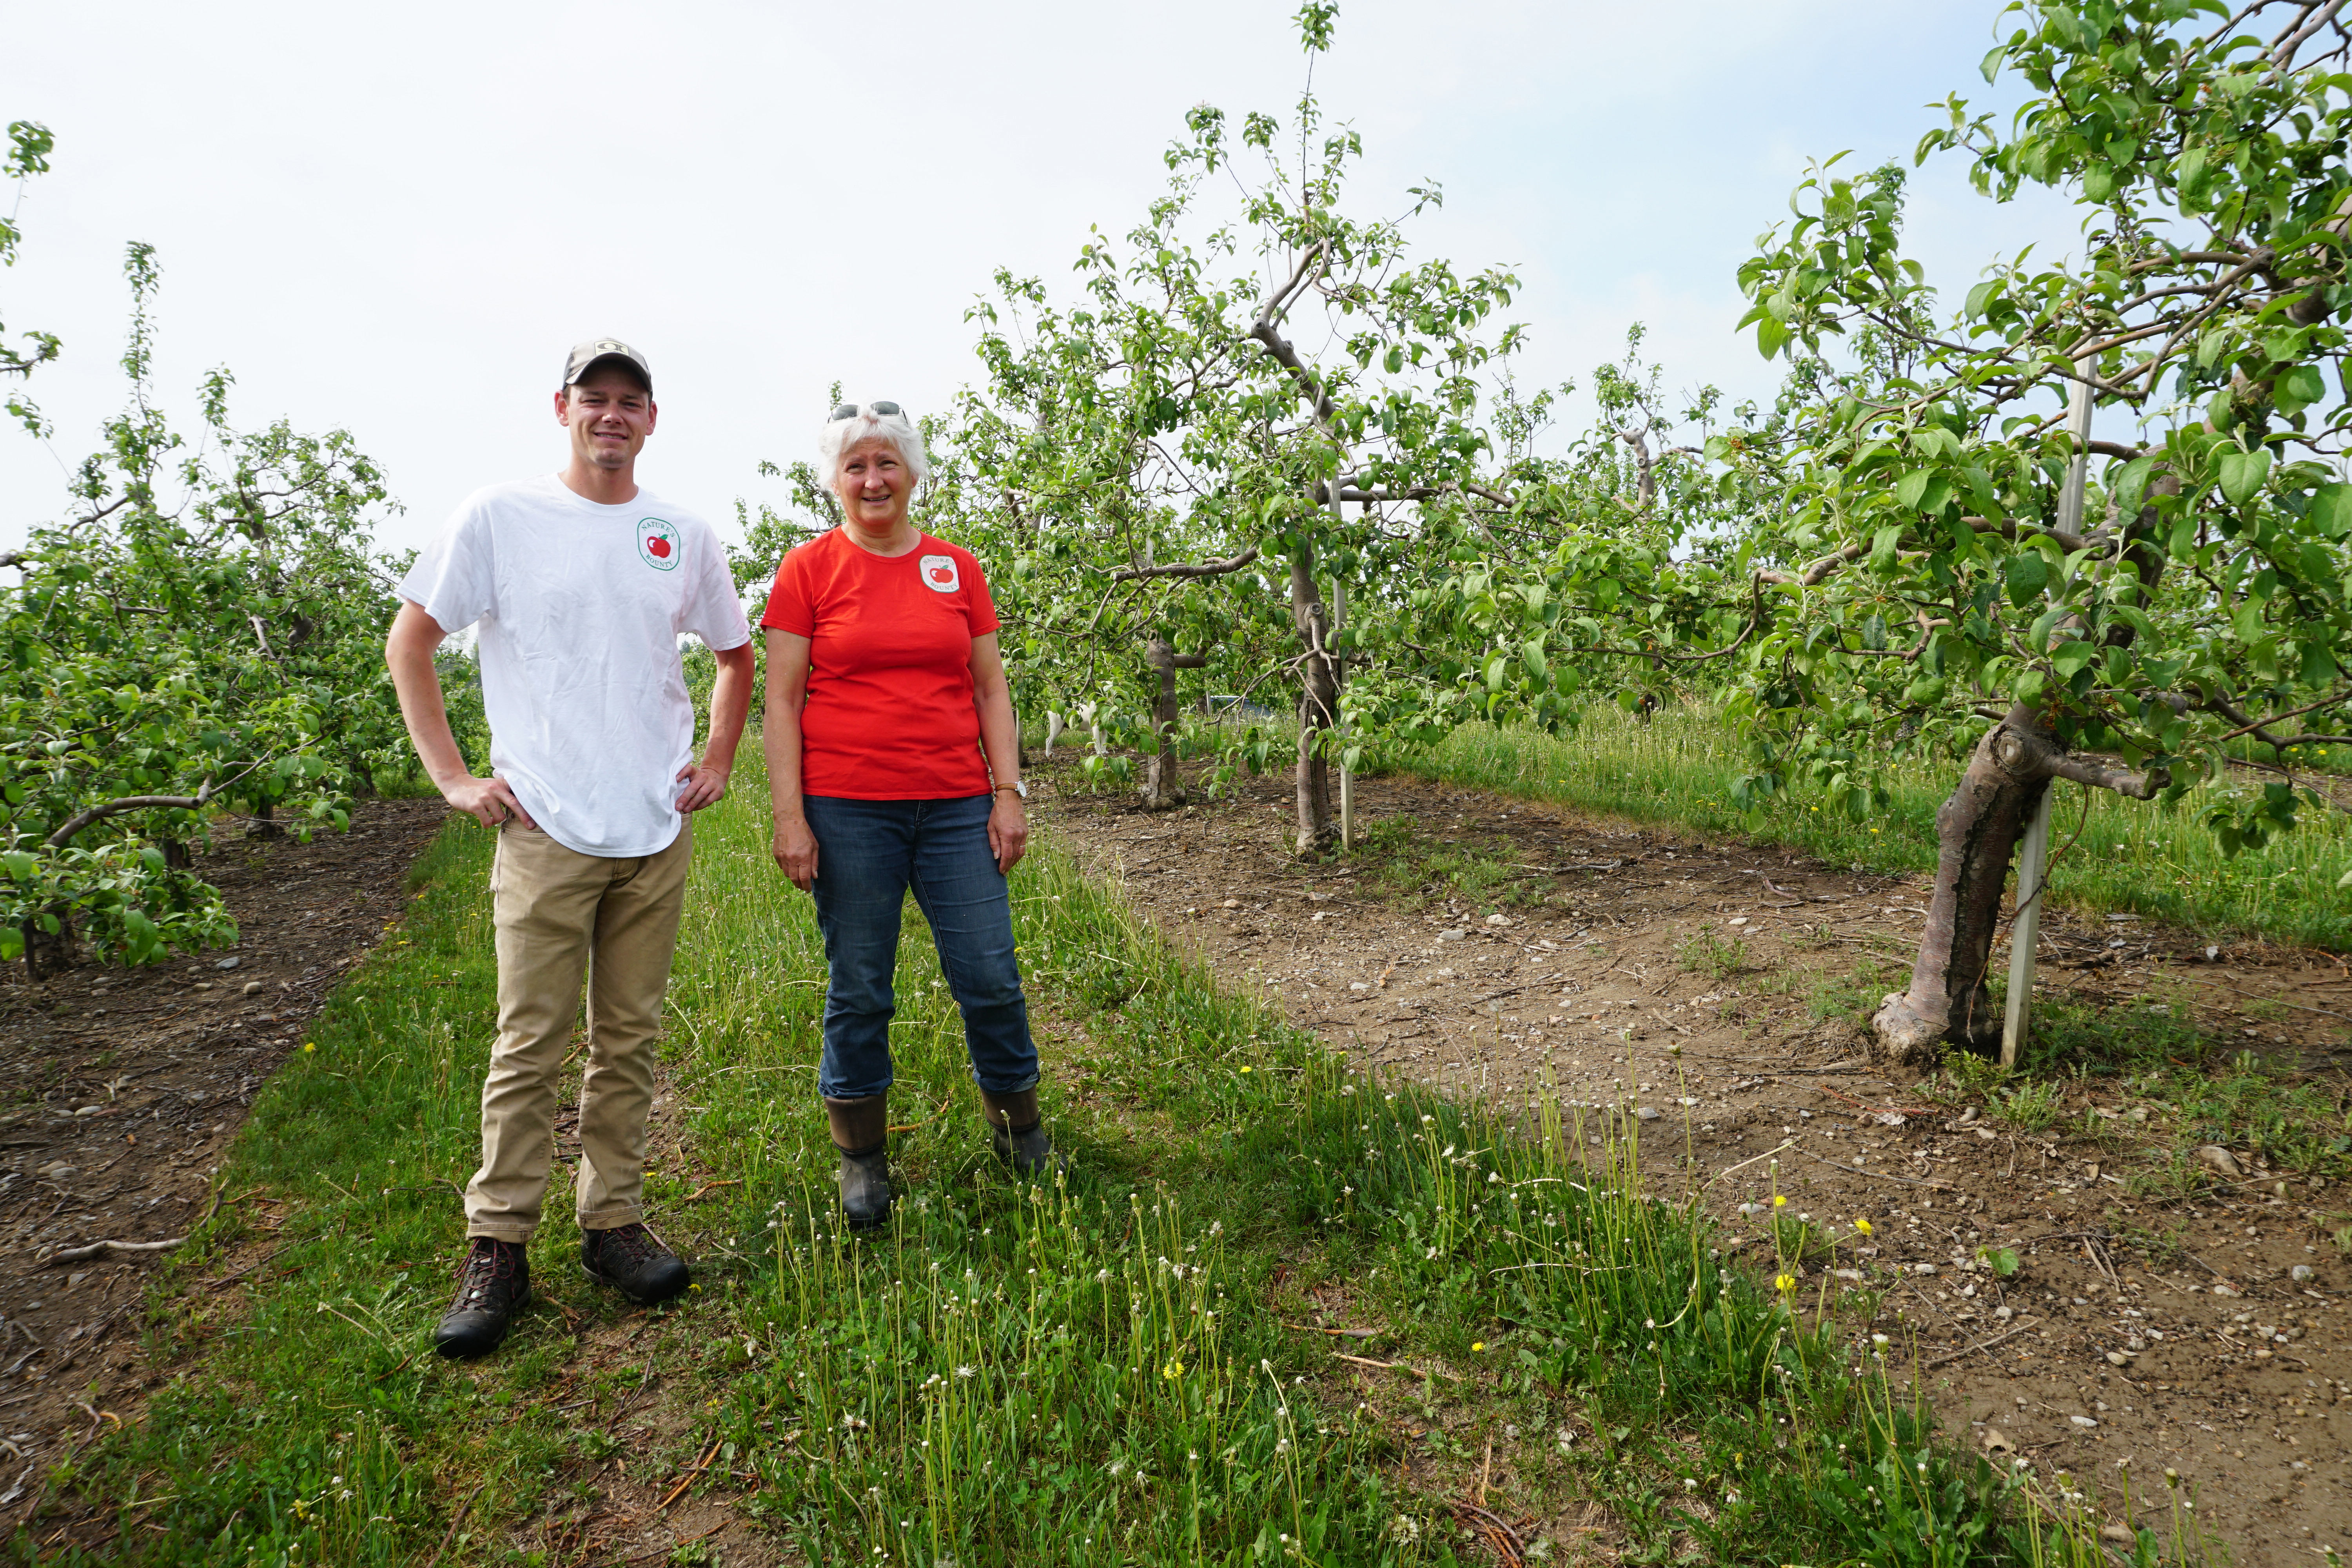 FarmLink._Natures_Bounty_owner_Cathy_McKay_and_manager_Rob_Alexander_2.JPG